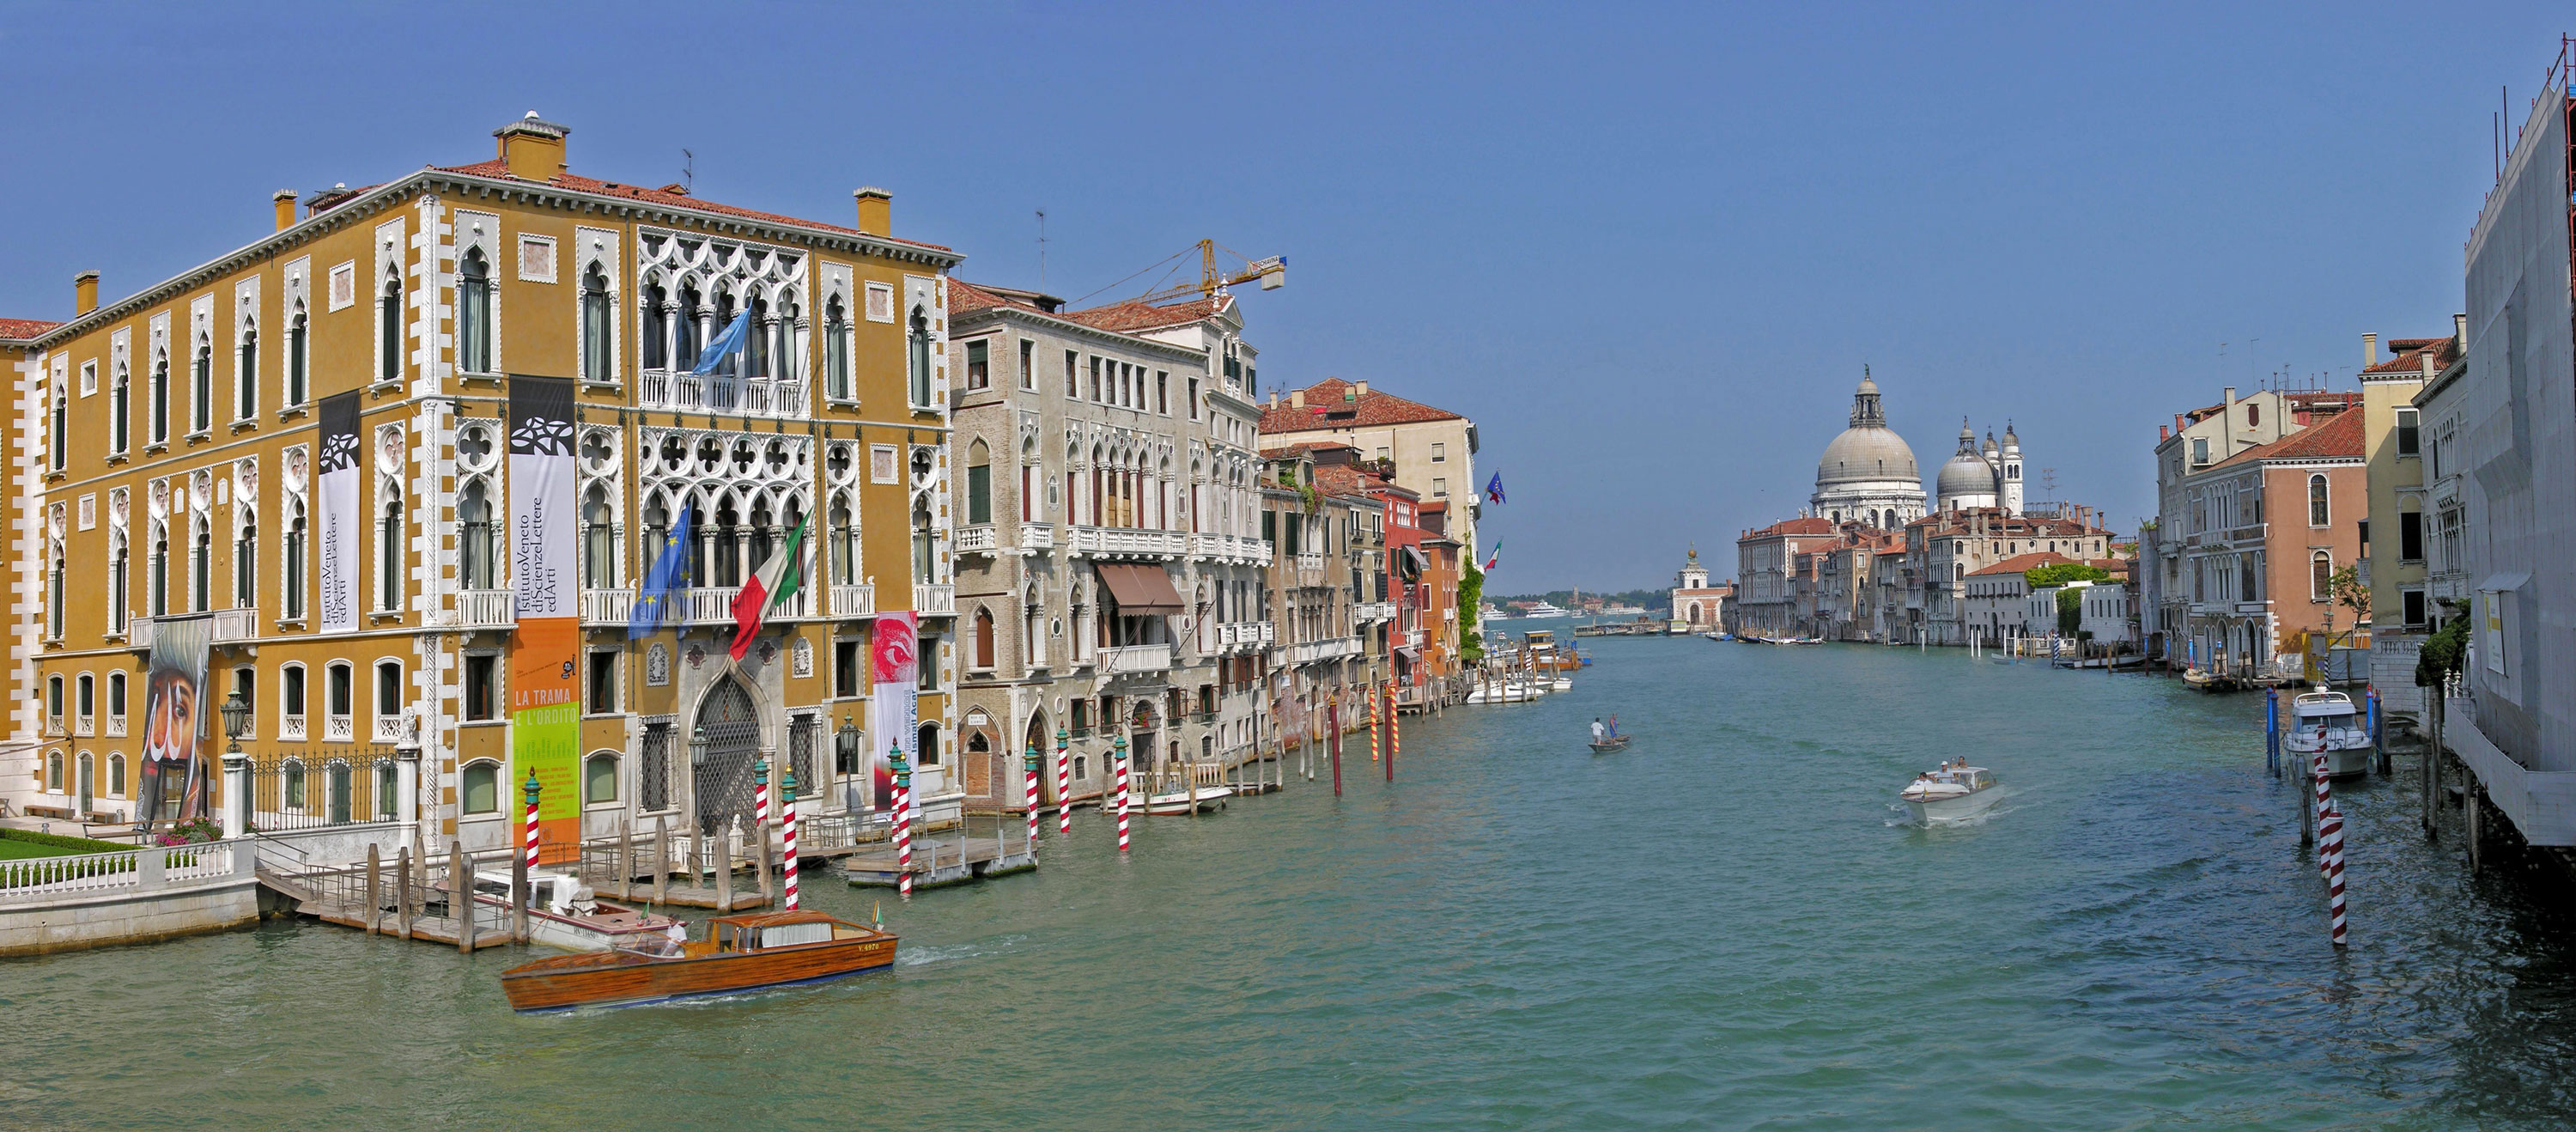 file venedig panorama canale wikimedia commons. Black Bedroom Furniture Sets. Home Design Ideas